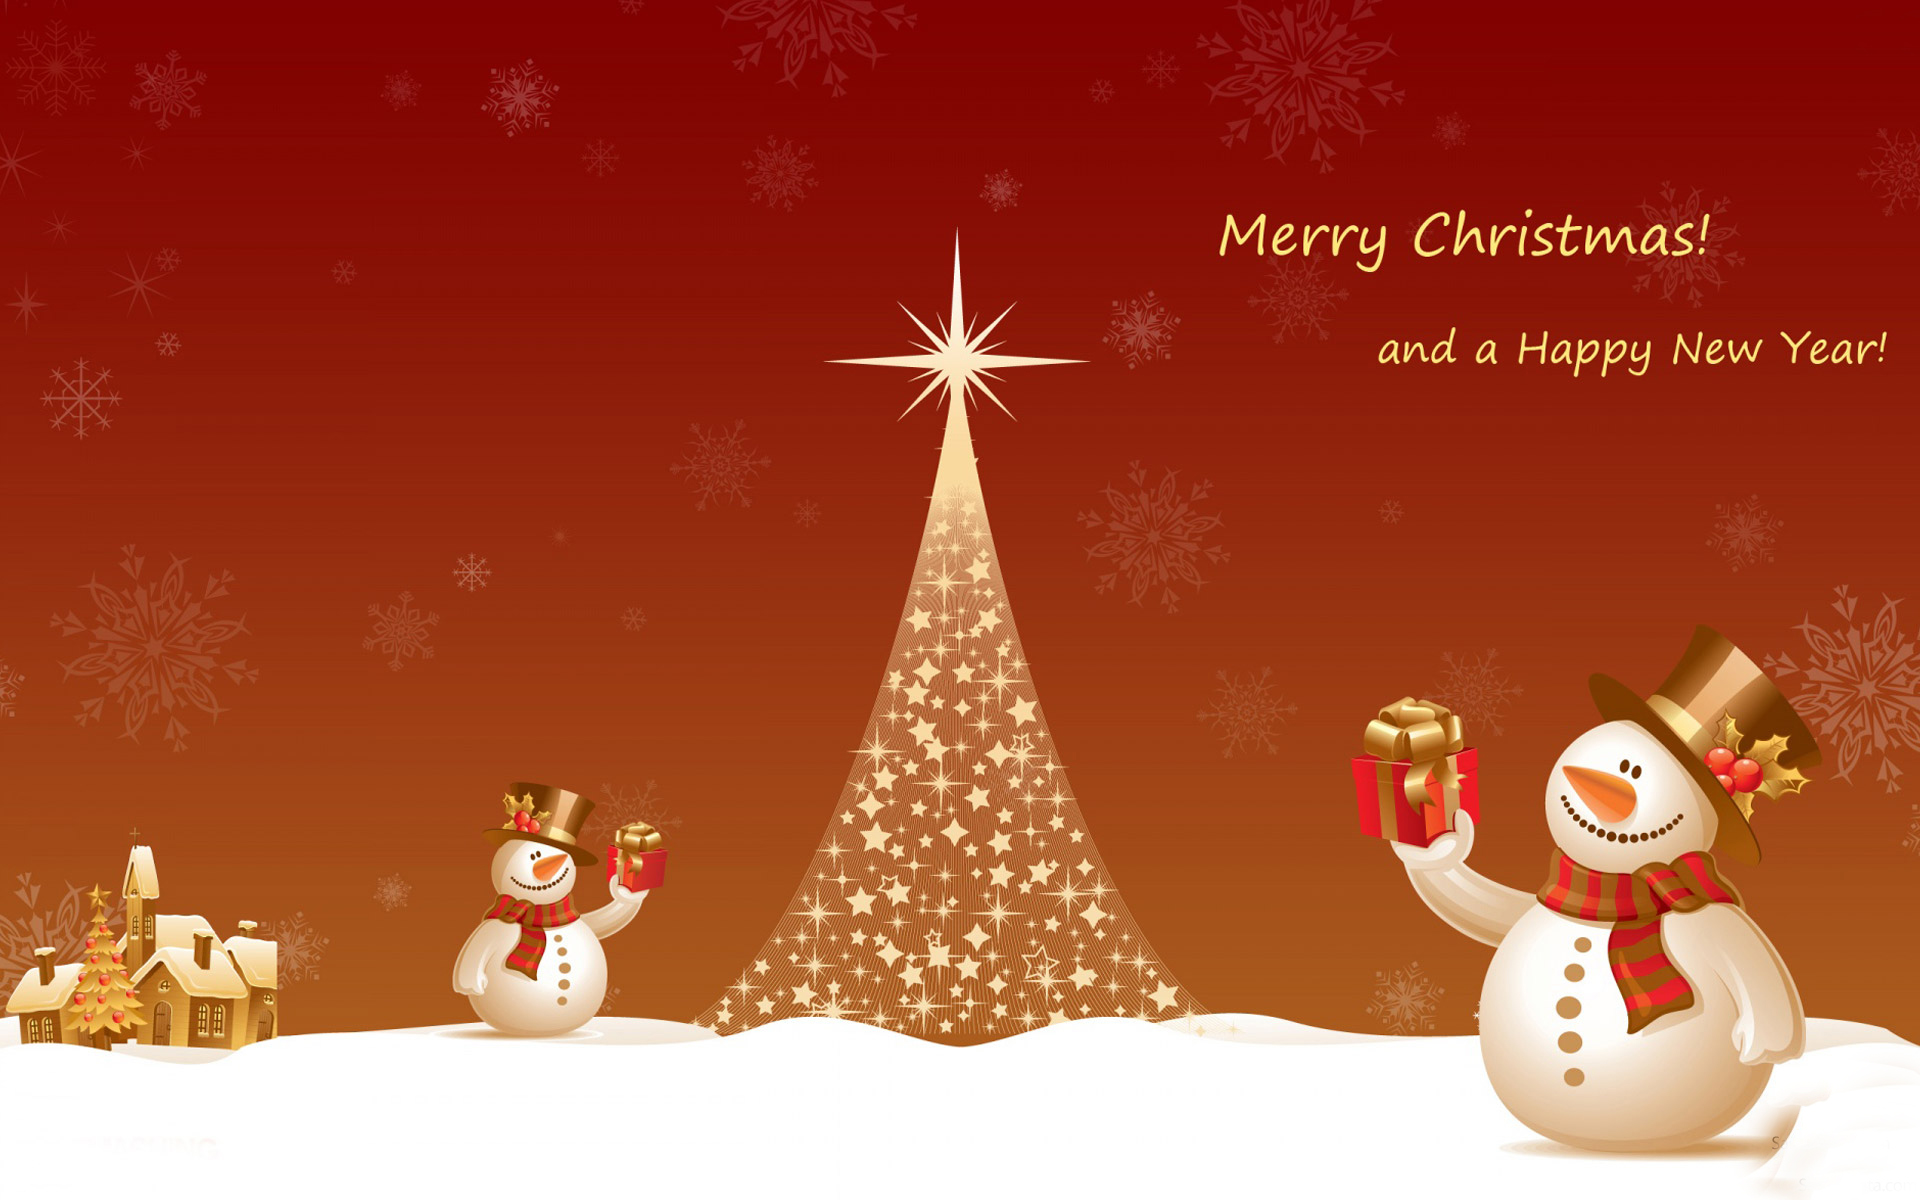 The Best Merry Christmas And Happy New Year 2021 Wallpaper